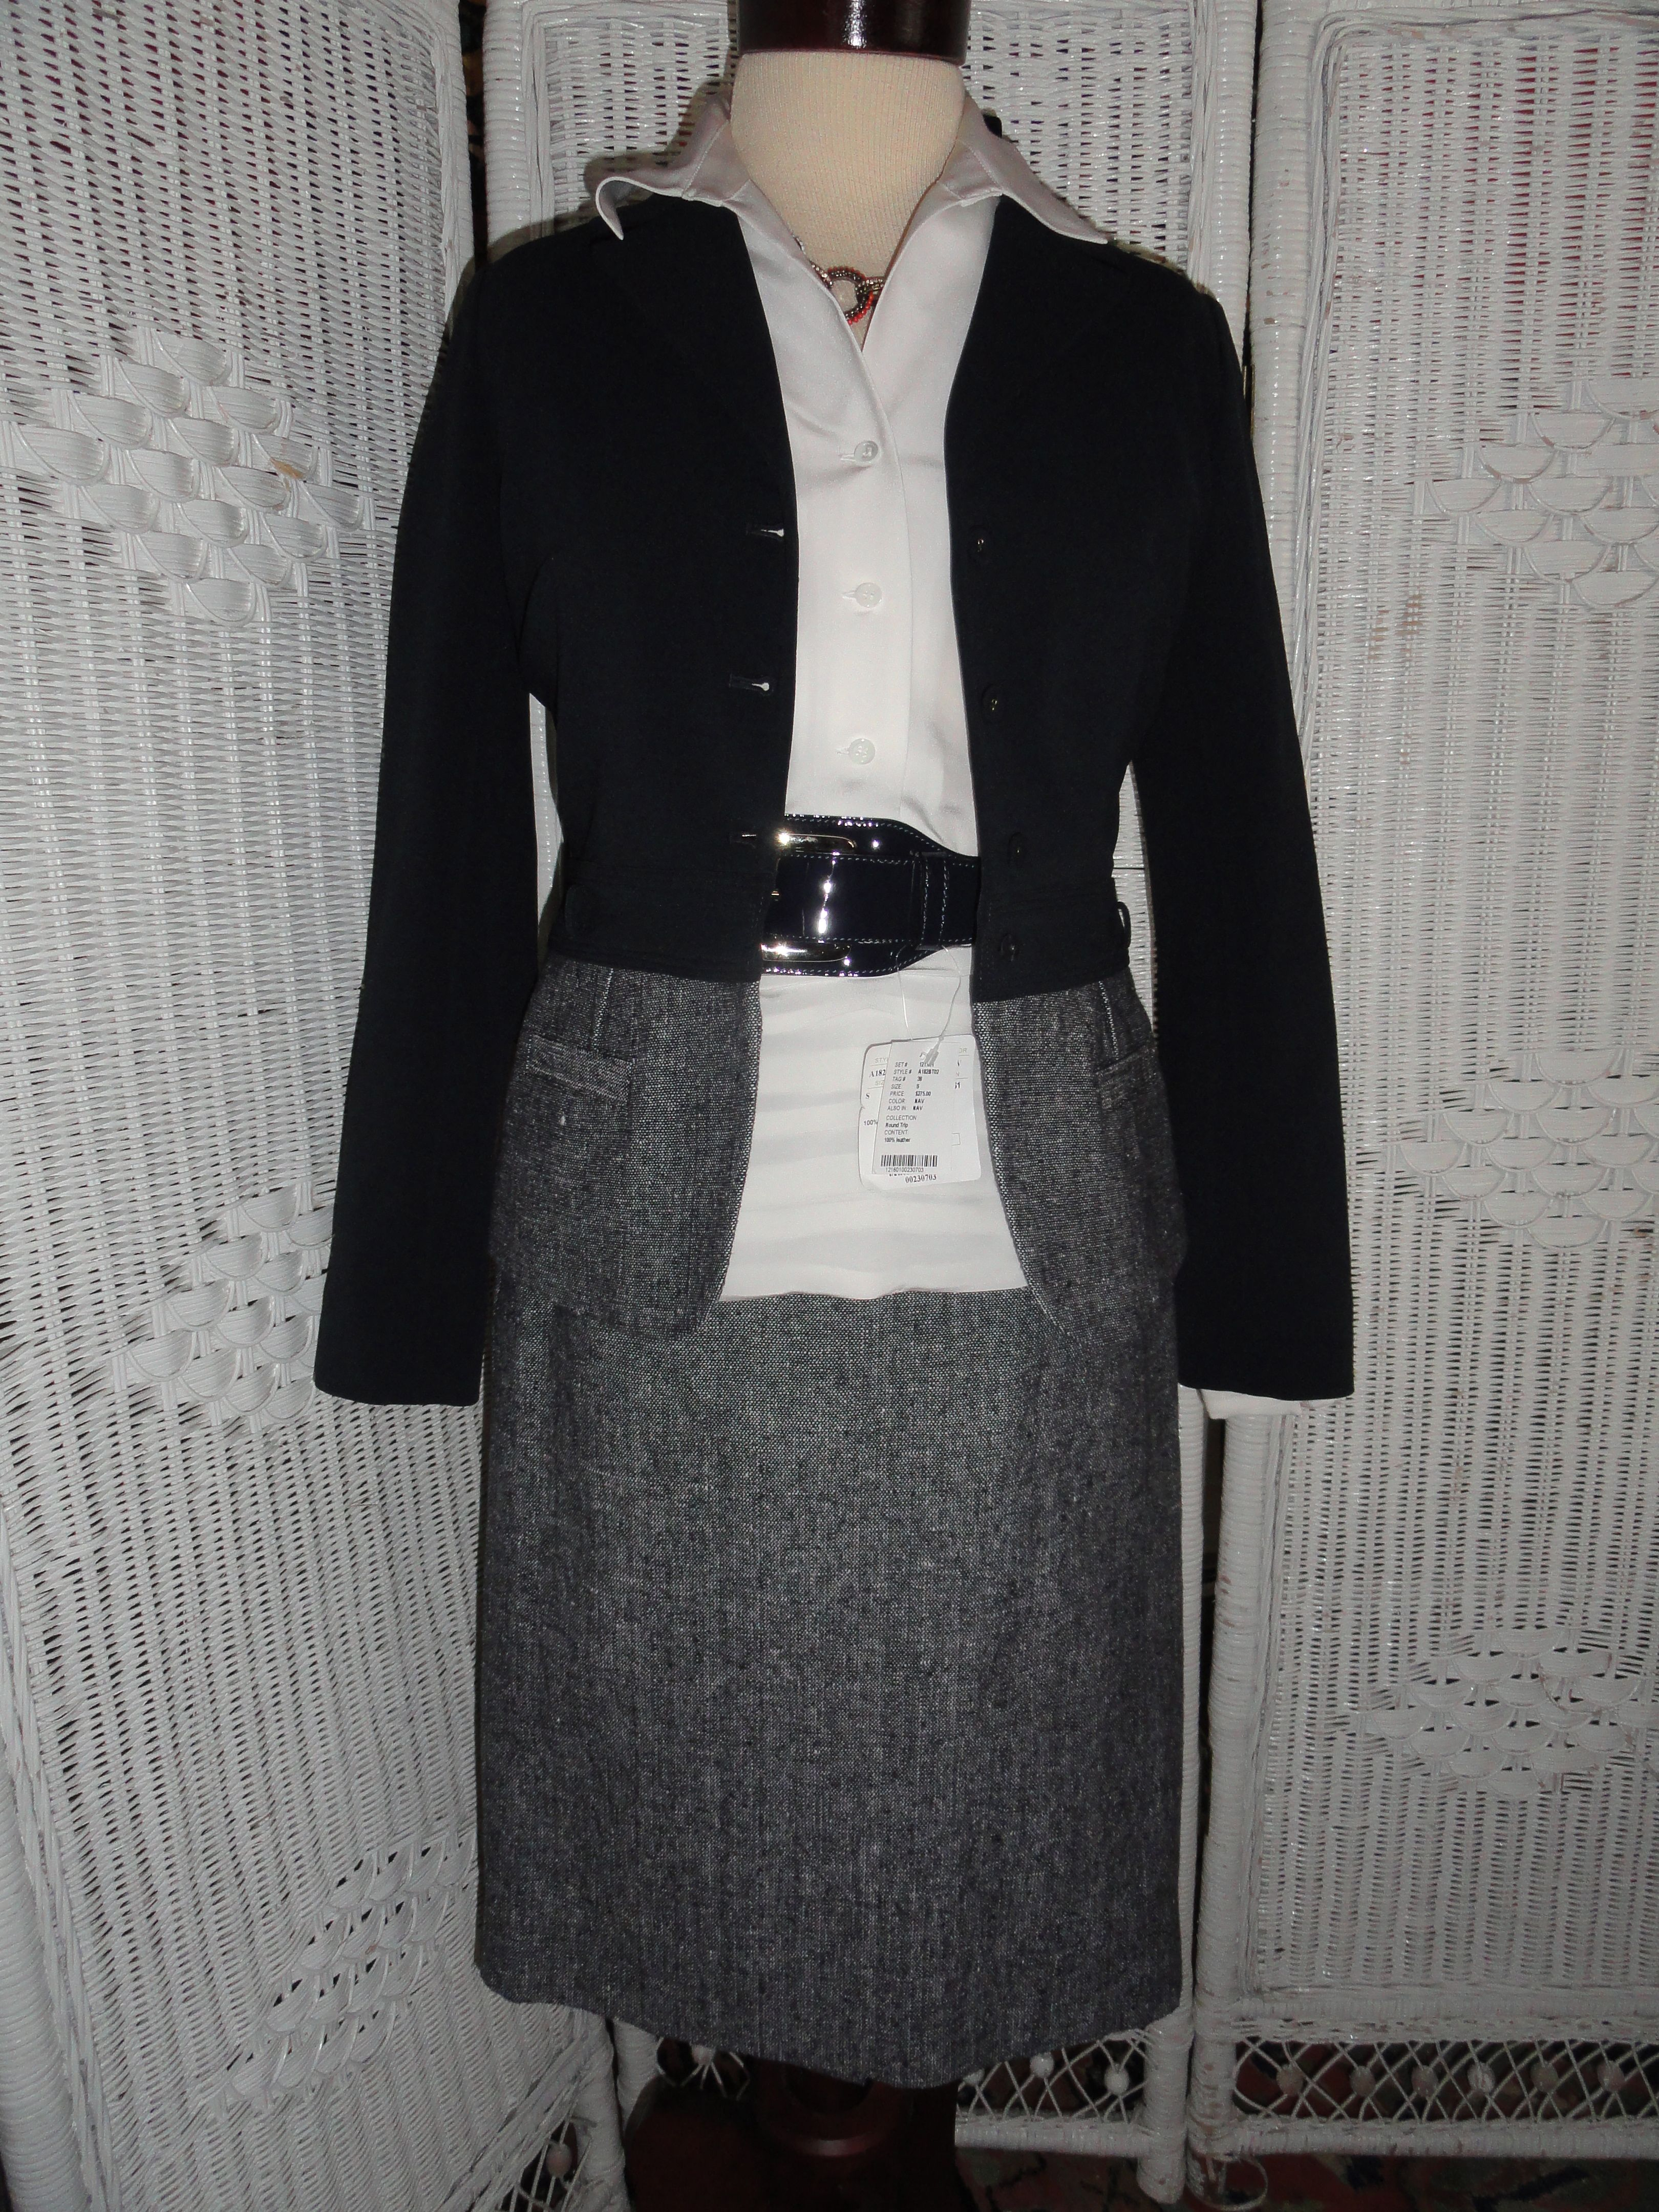 This is another ensemble created for Doncaster's 8 GR8 Style Pieces. Includes: Suit Jacket, Suit Skirt, White Blouse, belt and necklace.